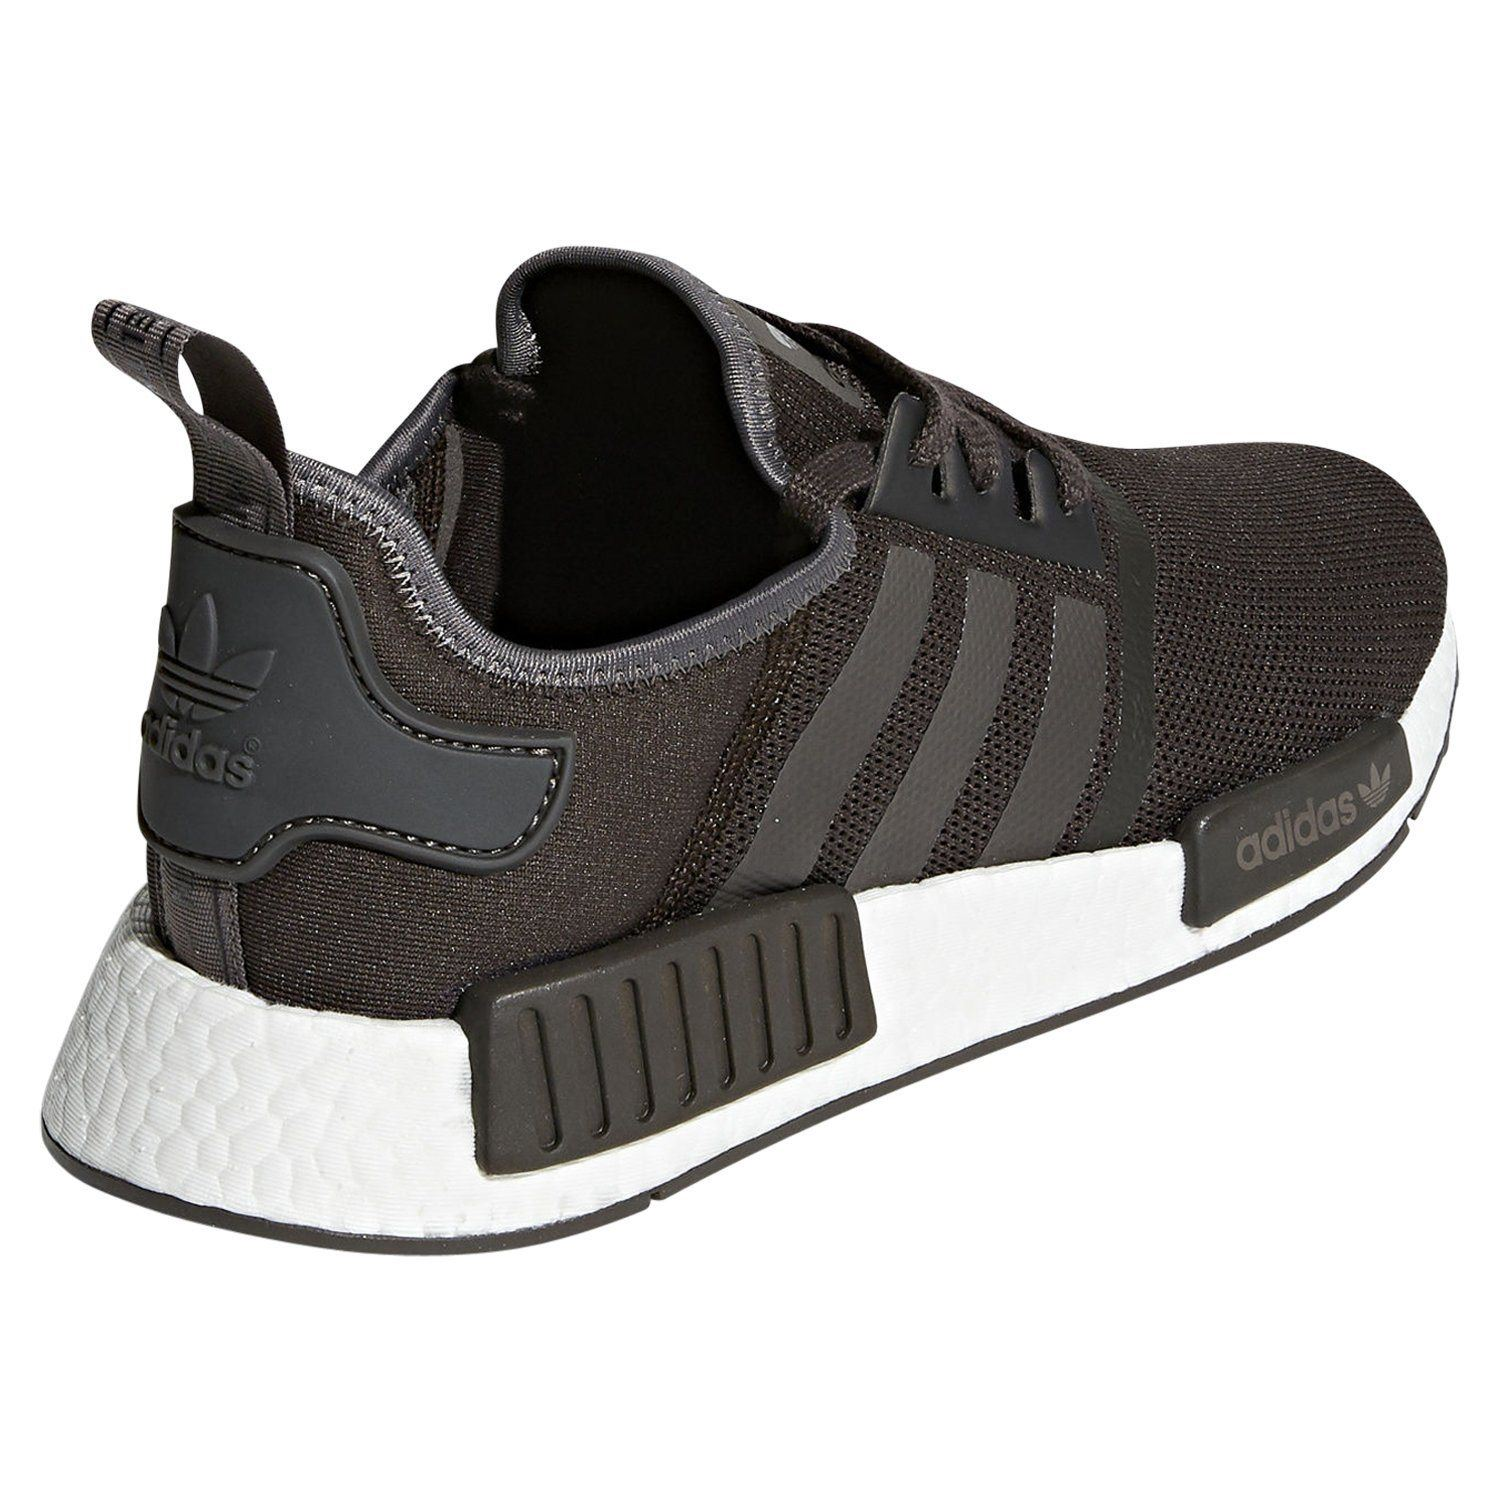 Details about adidas ORIGINALS NMD_R1 TRAINERS BROWN SNEAKERS SHOES MEN'S 3 STRIPES TREFOIL